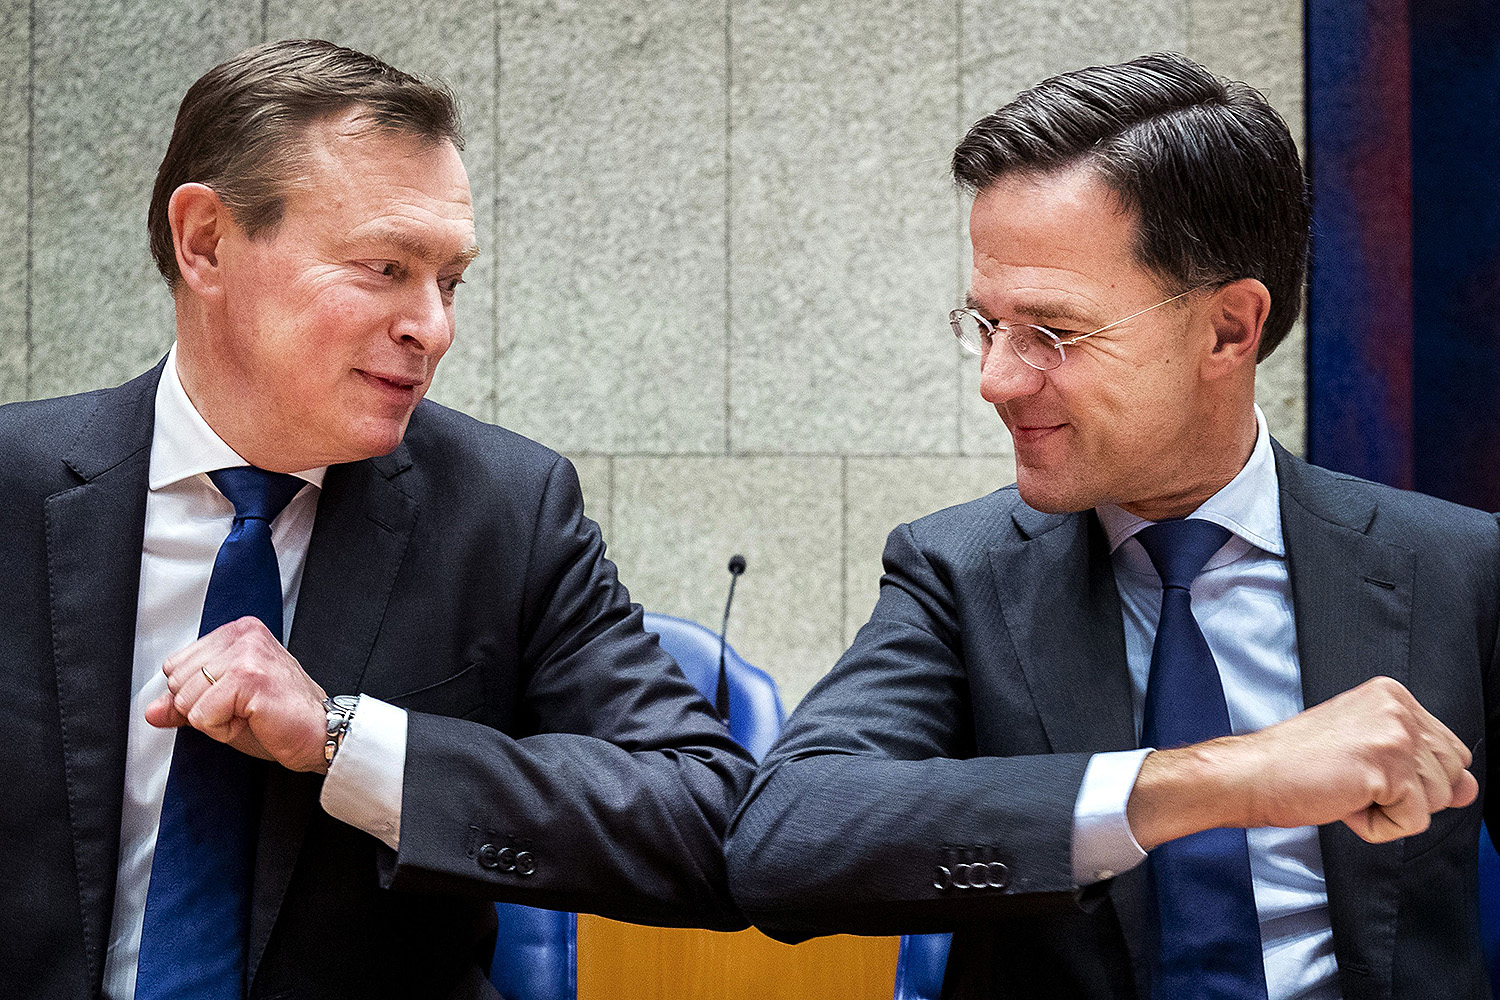 Dutch Prime Minister Mark Rutte (right) gives Dutch Minister for Medical Care Bruno Bruins an elbow bump—an alternative to a handshake during the coronavirus outbreak—at a meeting in The Hague, Netherlands, on March 10. REMKO DE WAAL/ANP/AFP via Getty Images